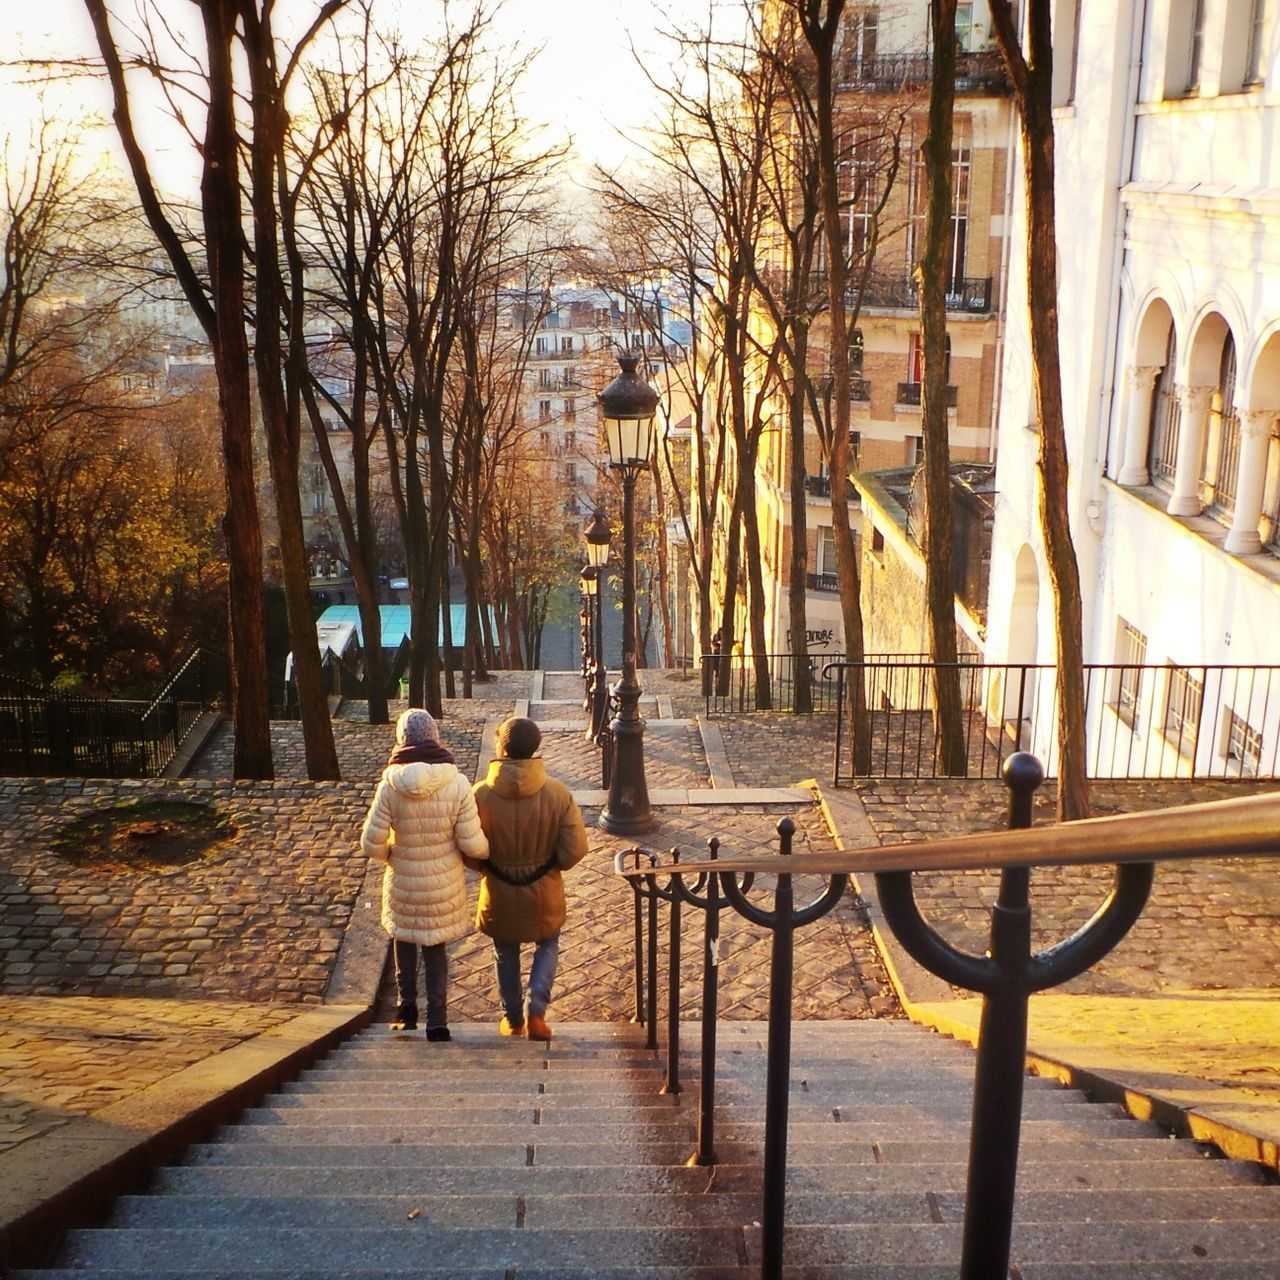 Rear View Of Man And Woman Walking On Steps In City During Morning